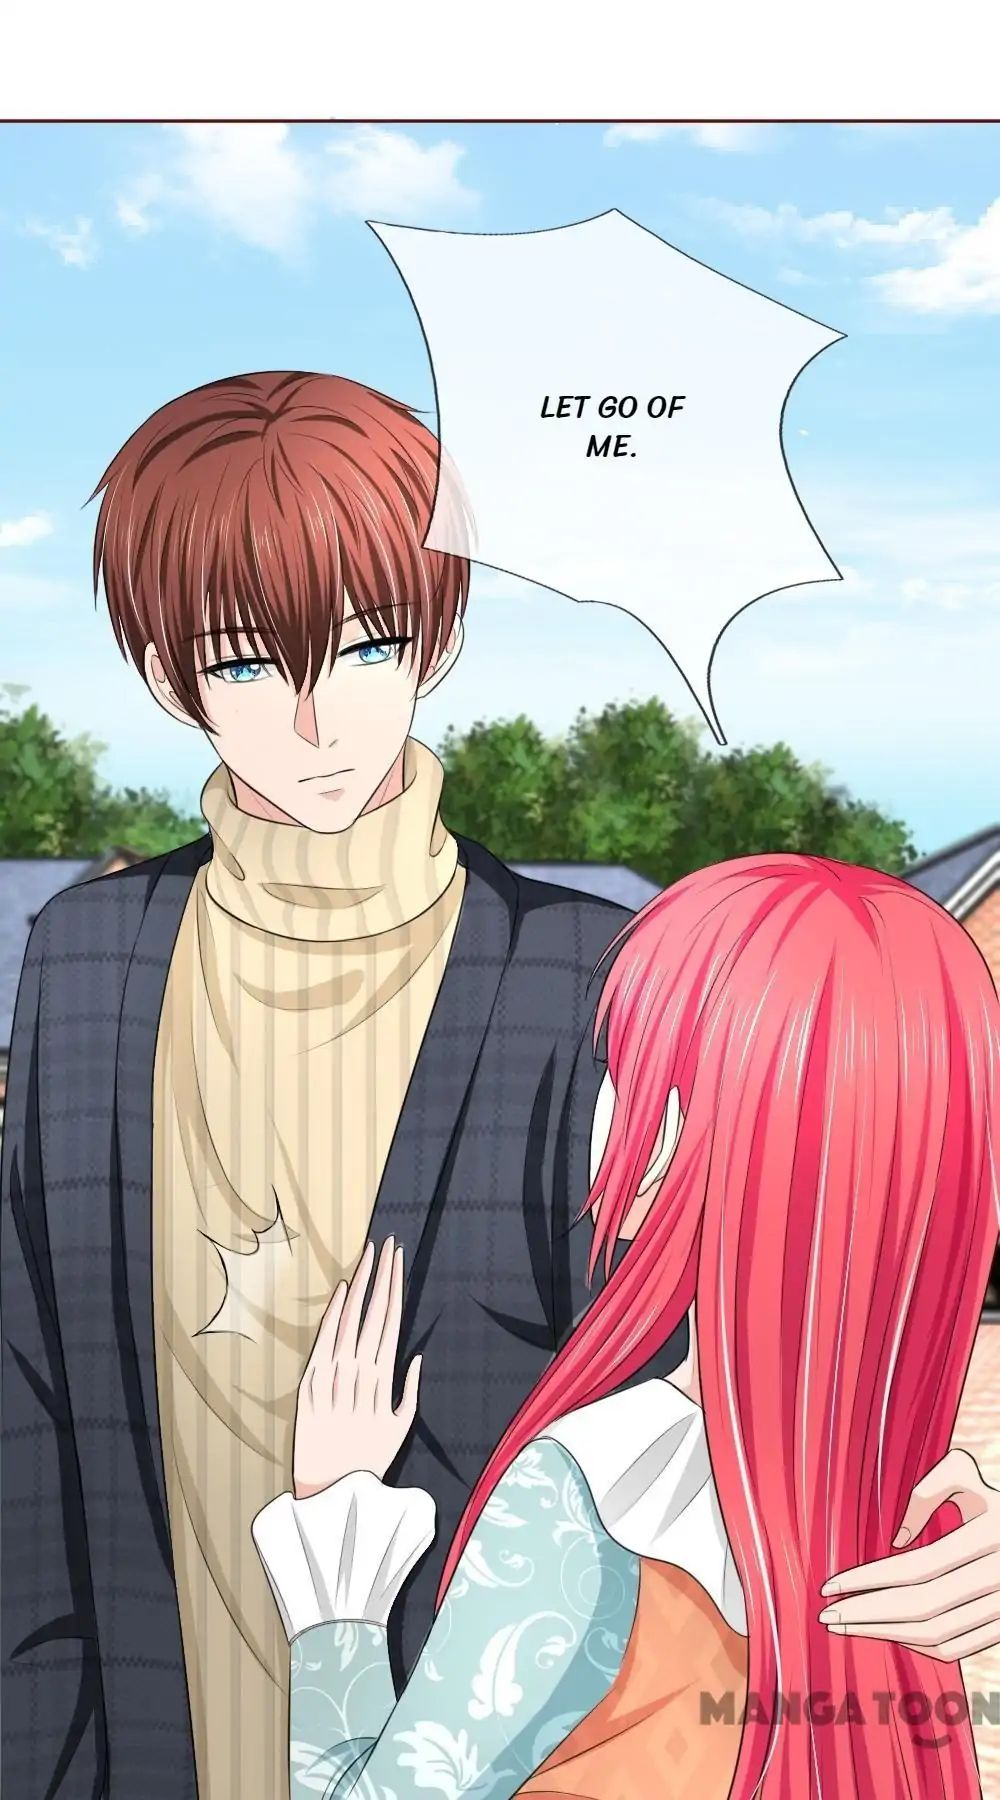 Inescapable Runaway Love - chapter 144 - #3